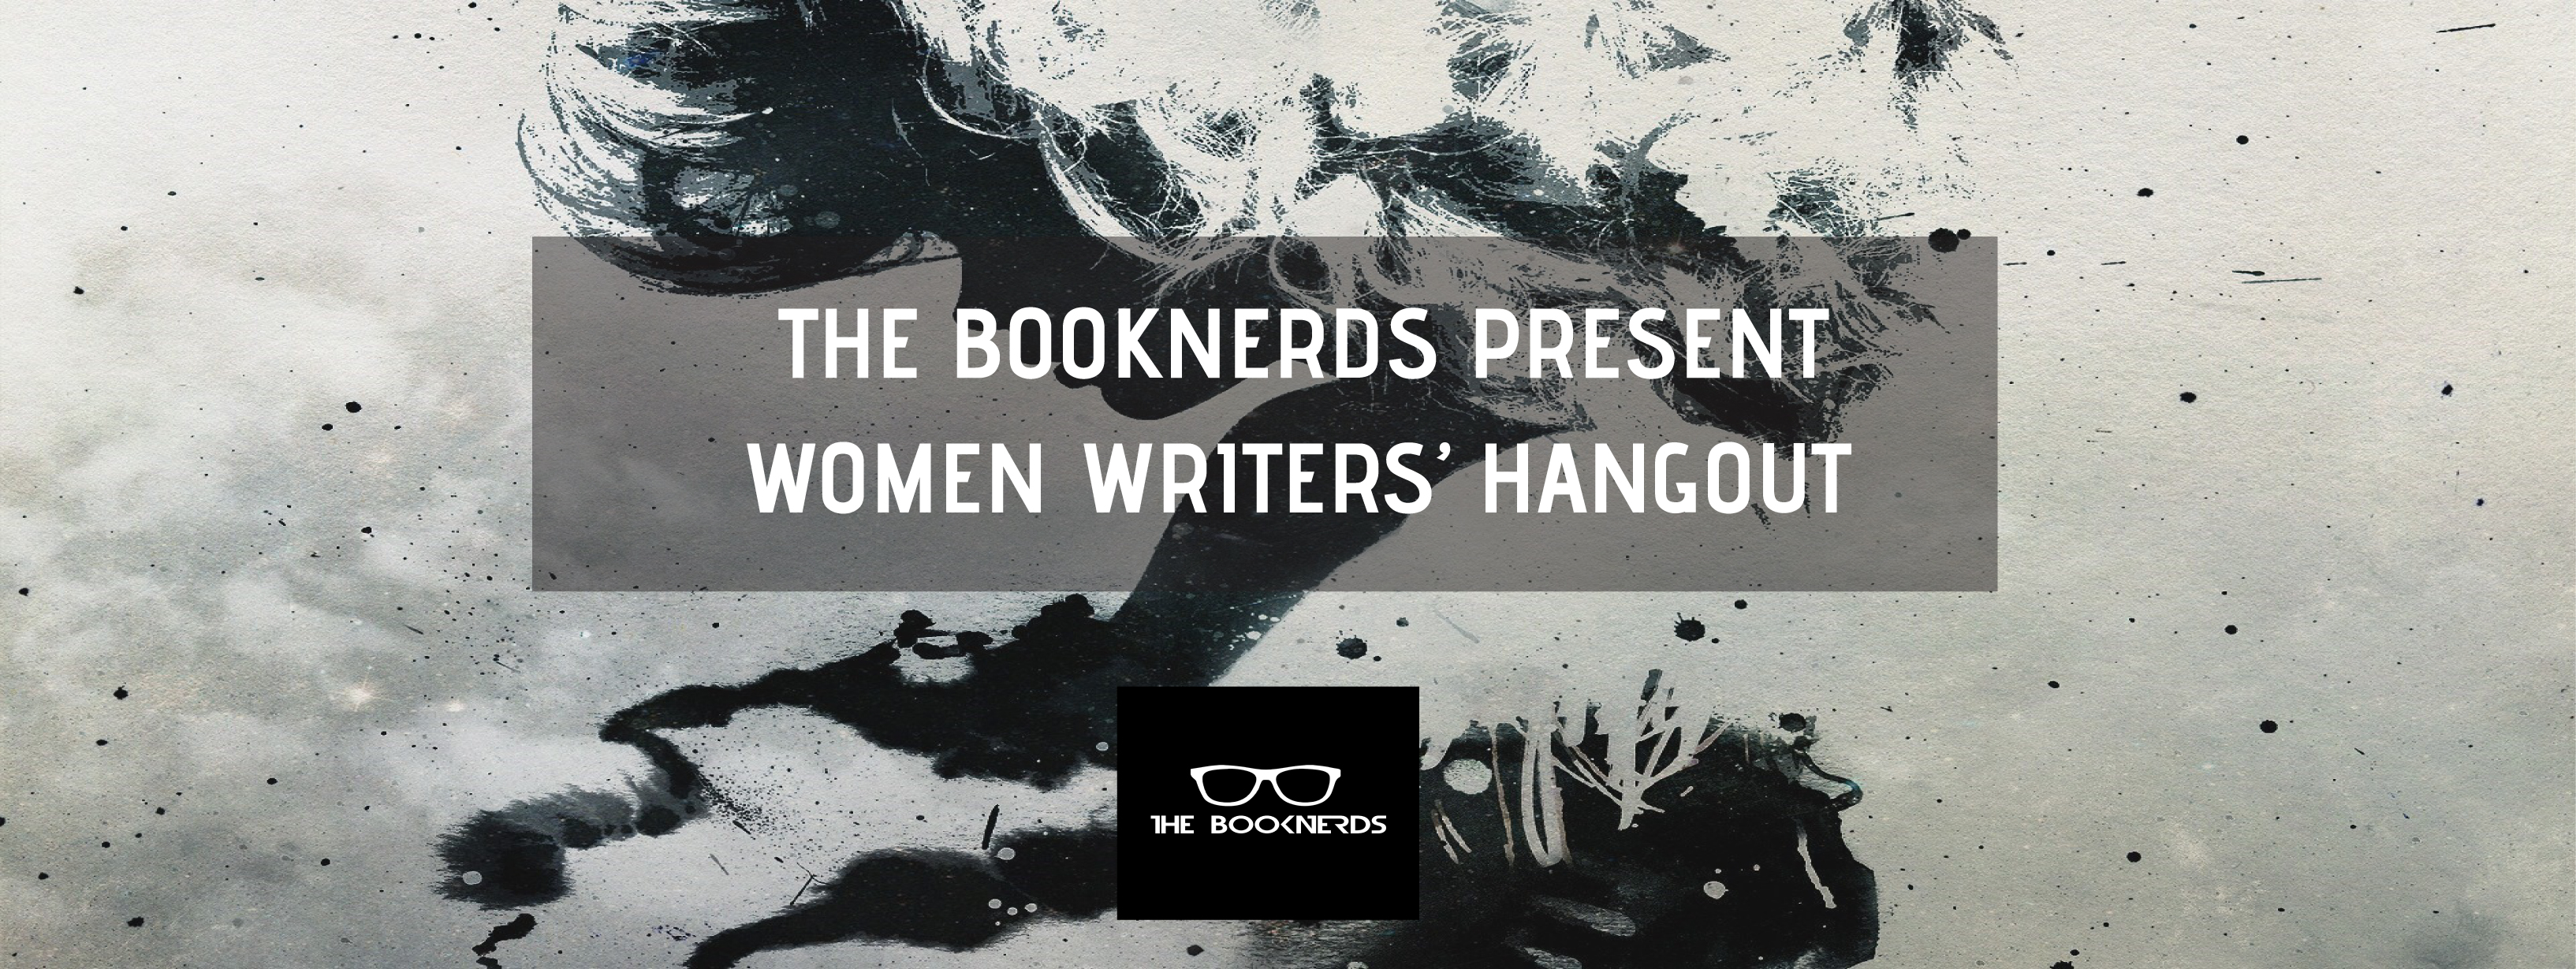 The Booknerds Women Writers' Hangout